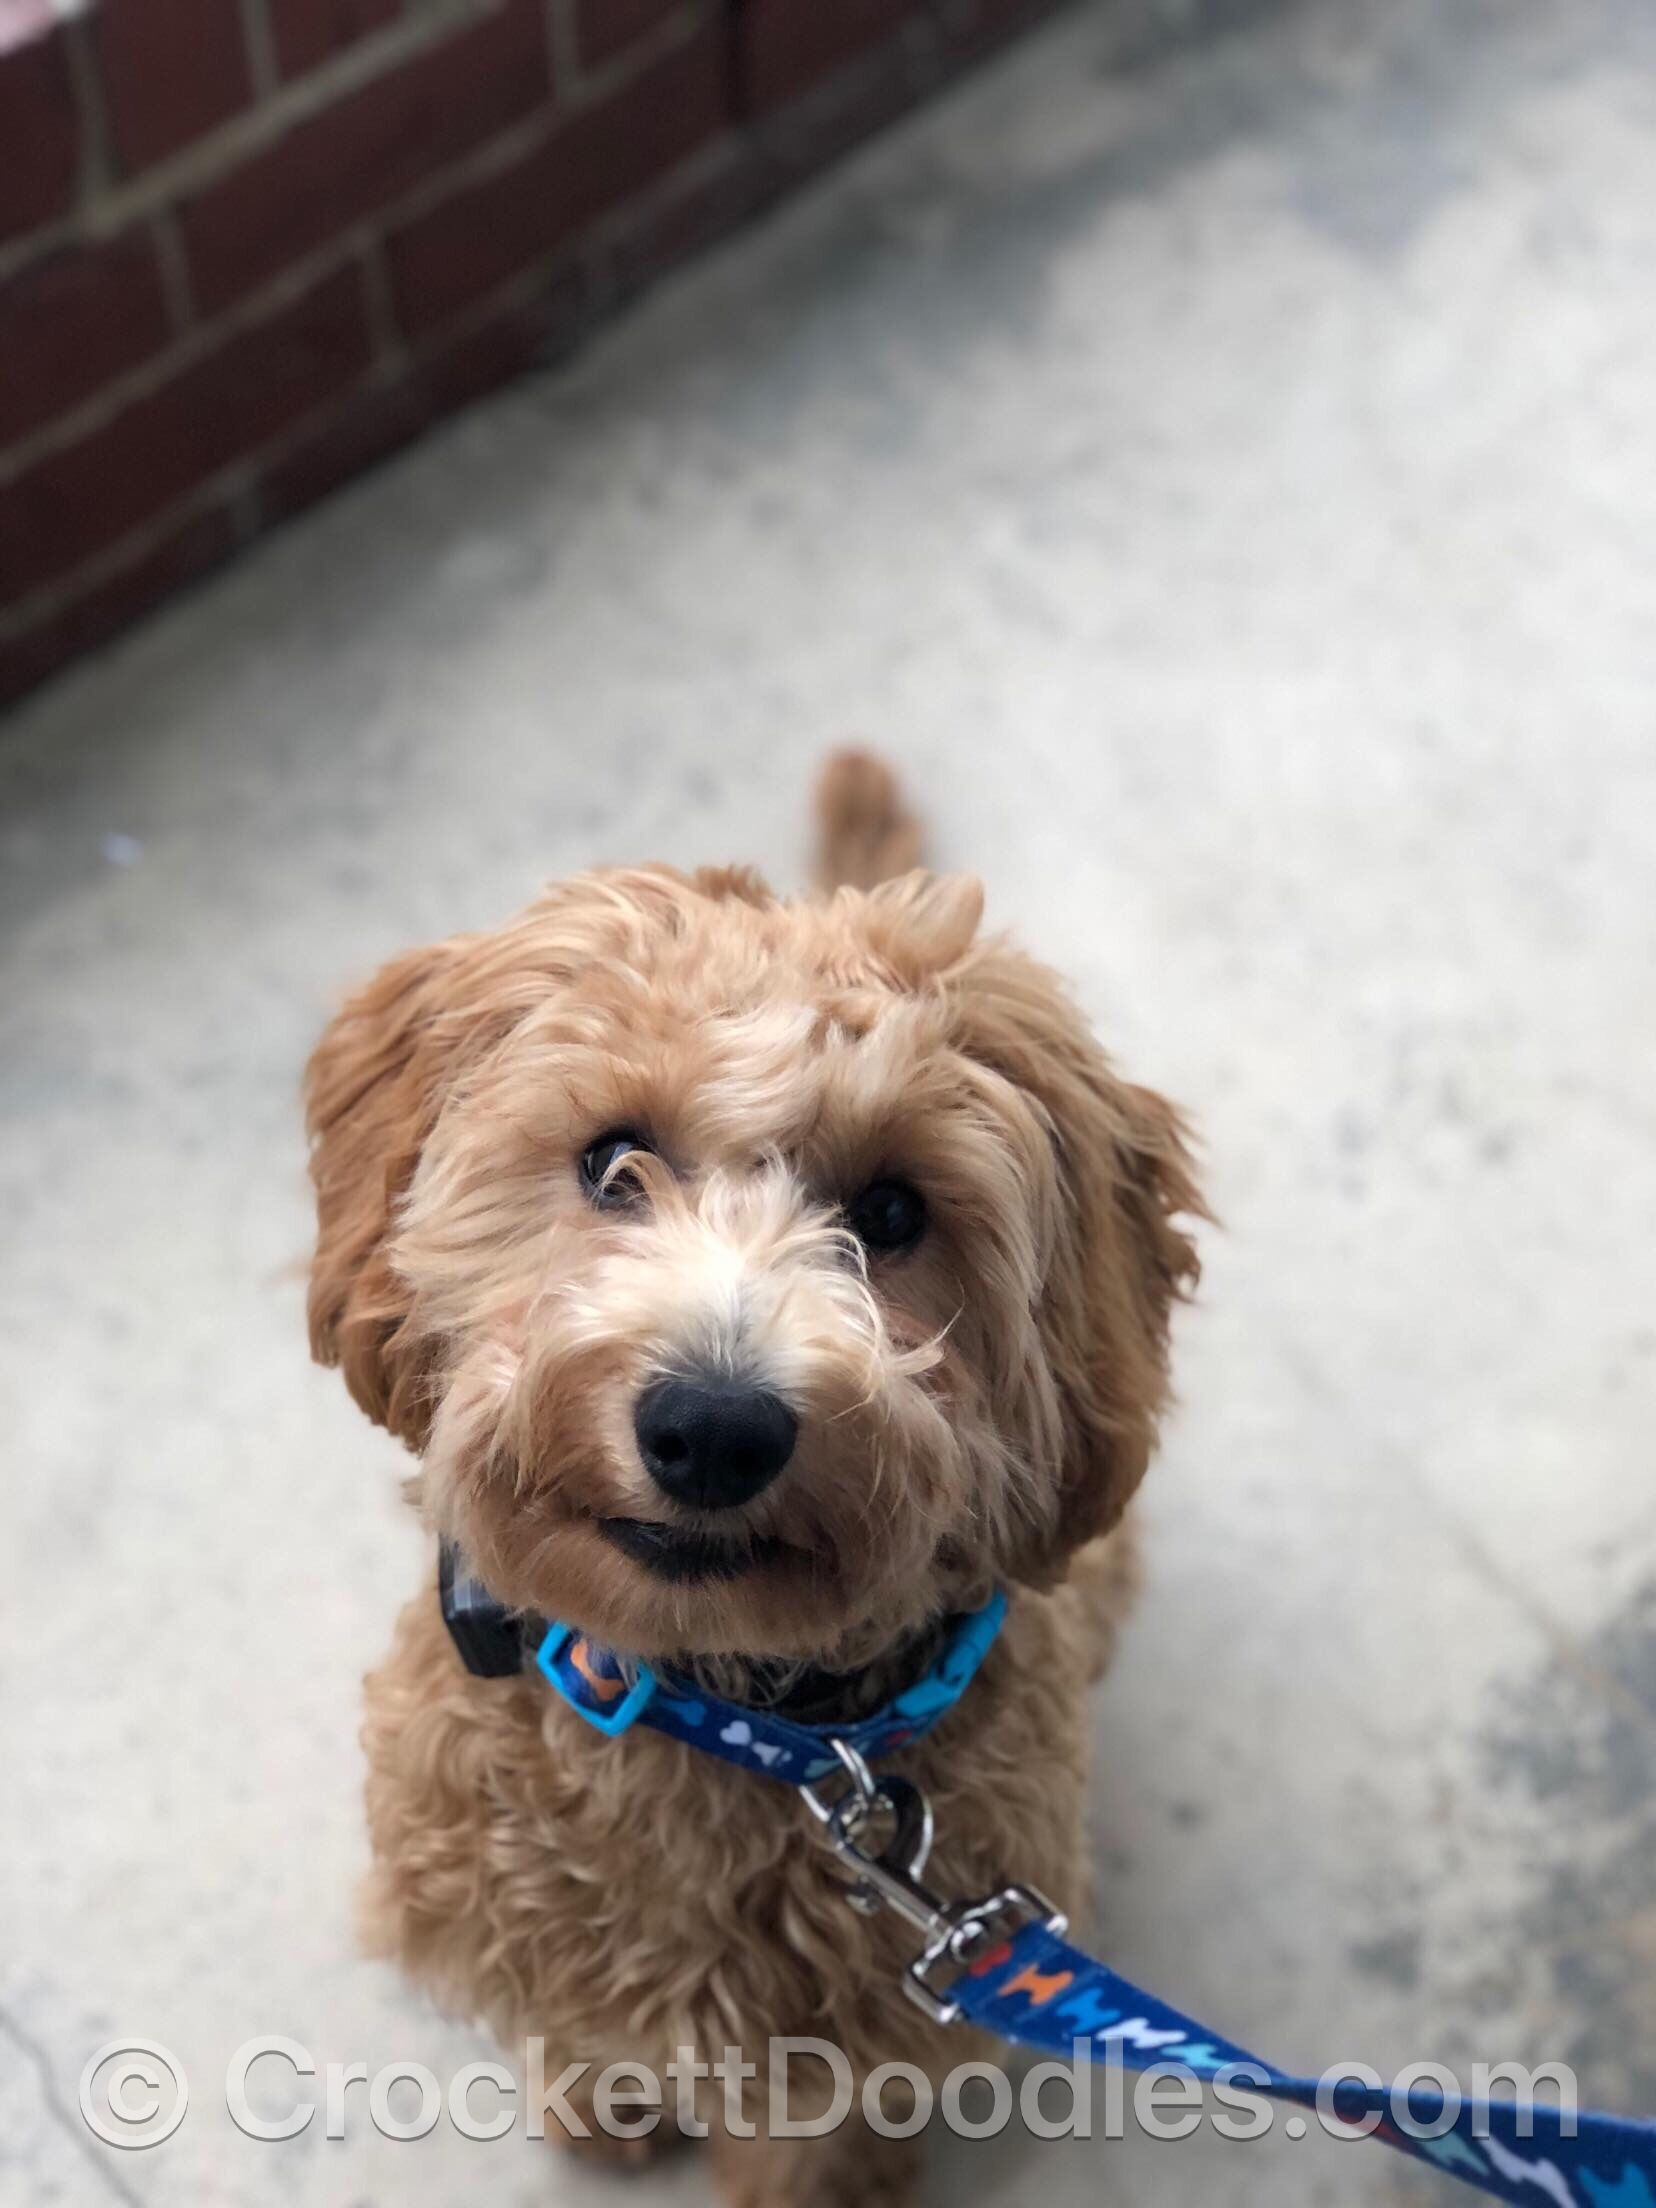 To Find Out More About The Crockett Doodles Program And Our Puppies Please Visit Www Crockettdoodl Labradoodle Puppies For Sale Labradoodle Puppy Doodle Puppy